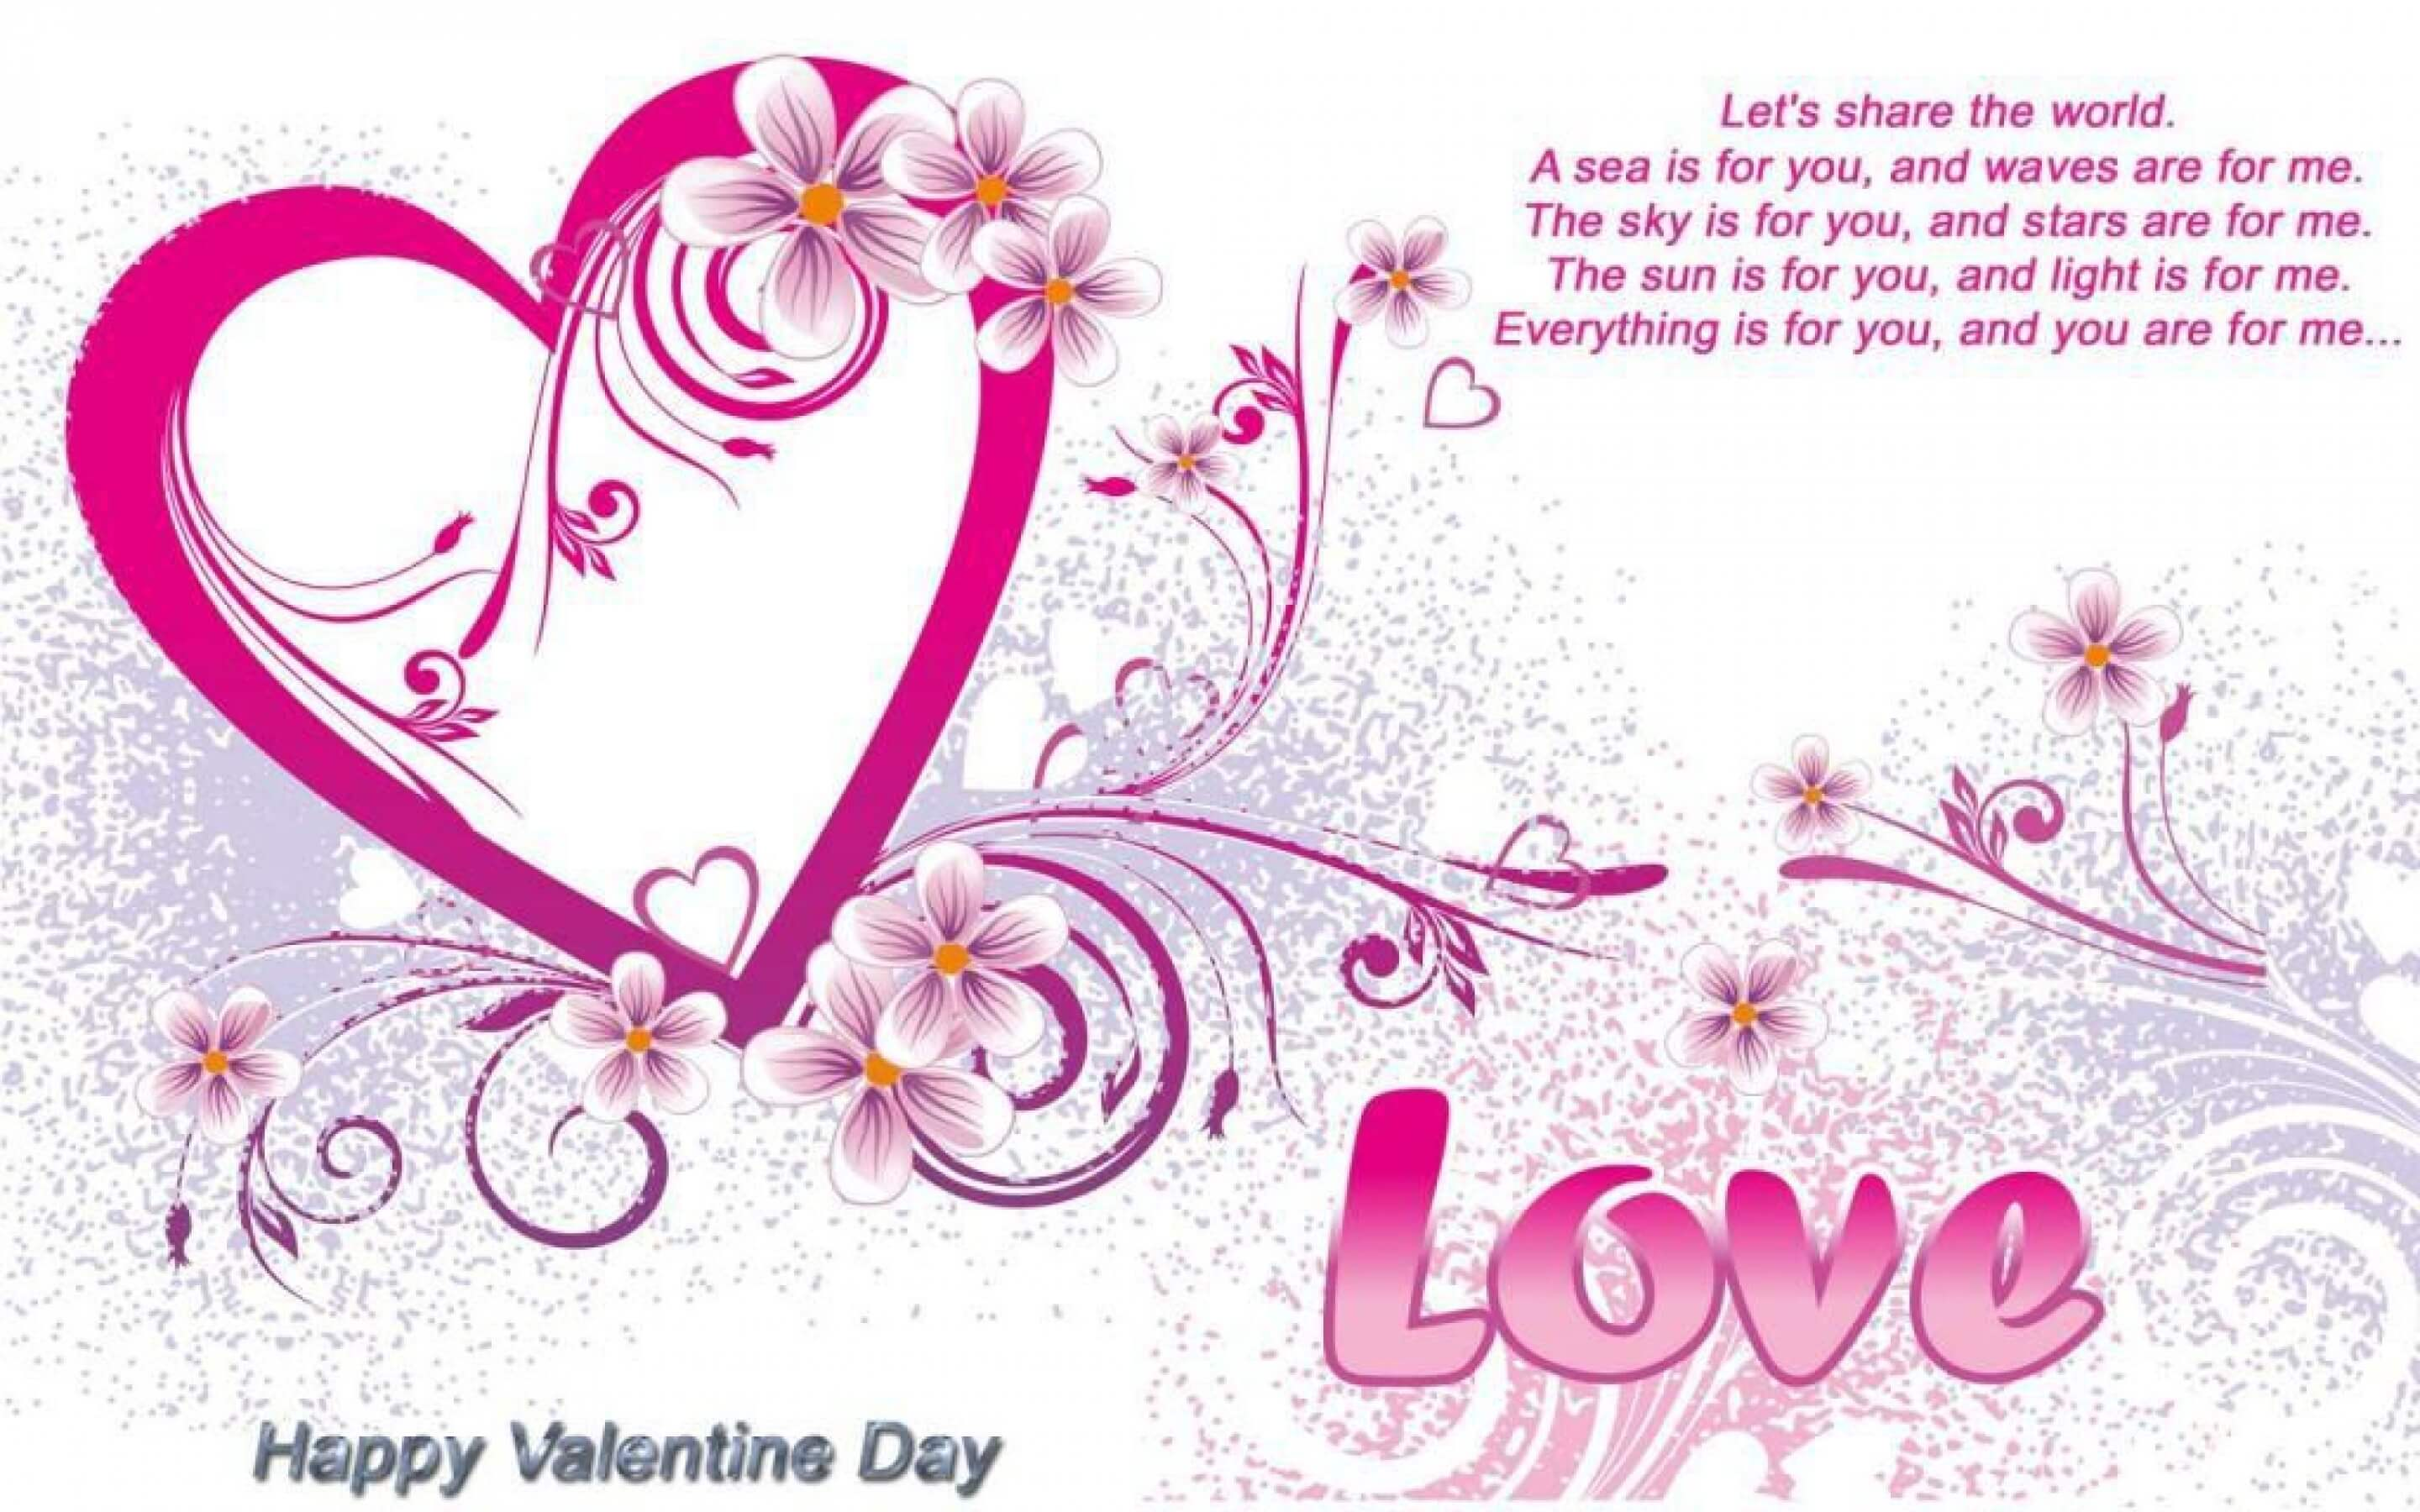 happy valentines day love quotes picture image wishes hd wallpaper